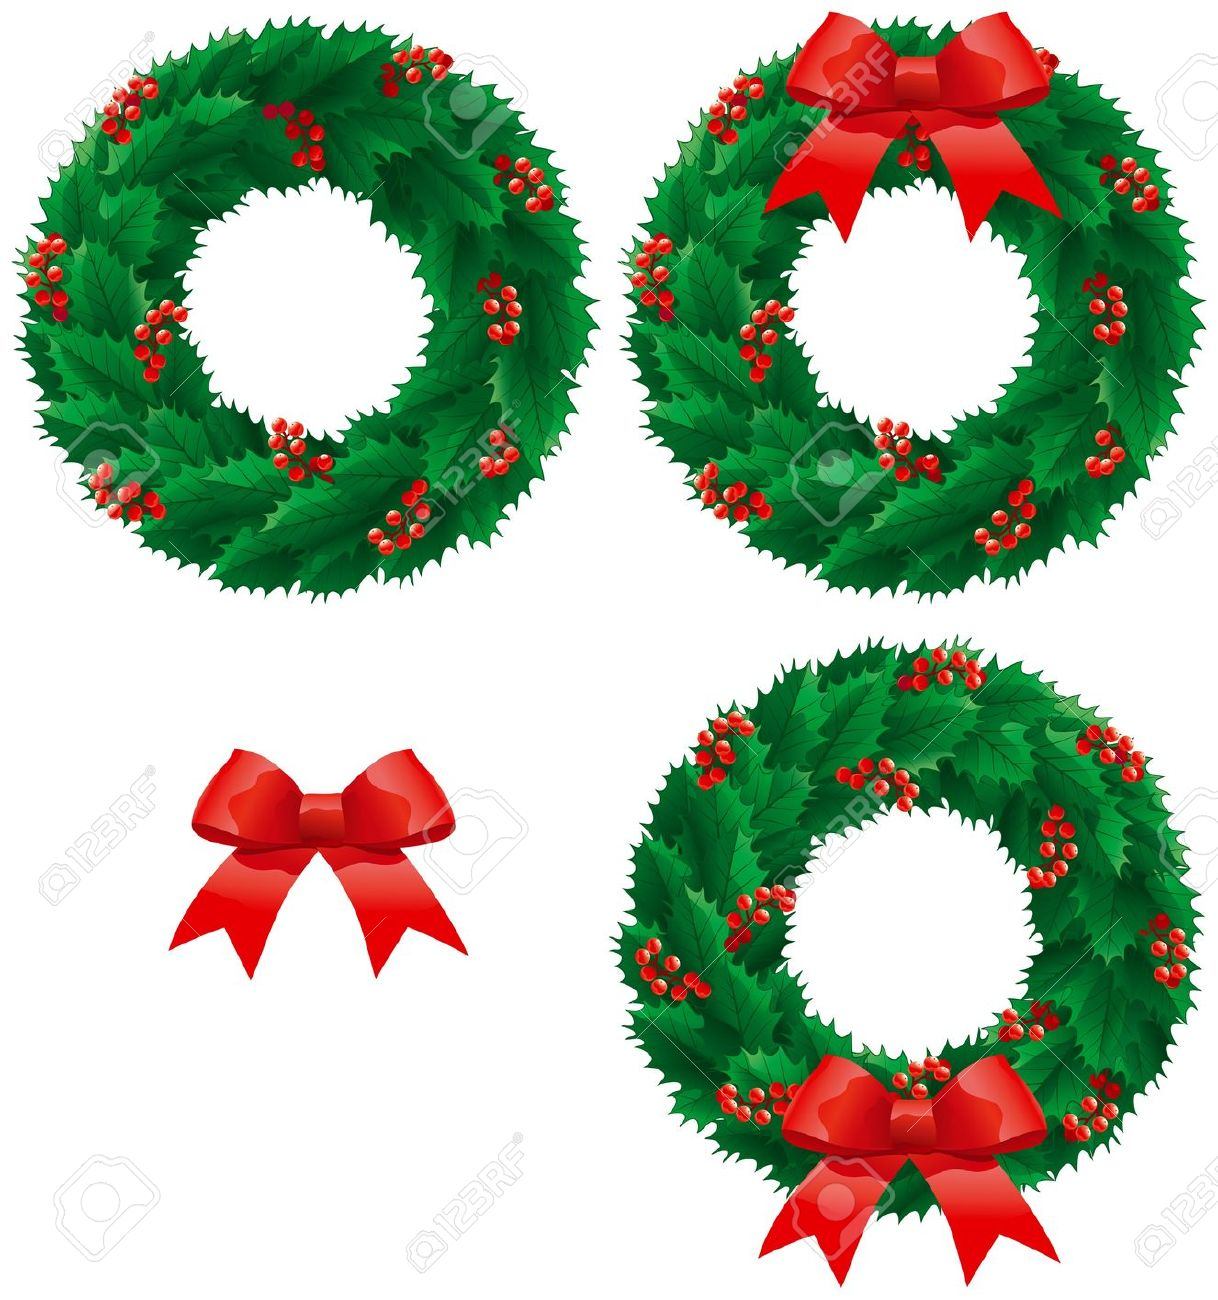 Holley clipart border Royalty holly 564 Clipground Free